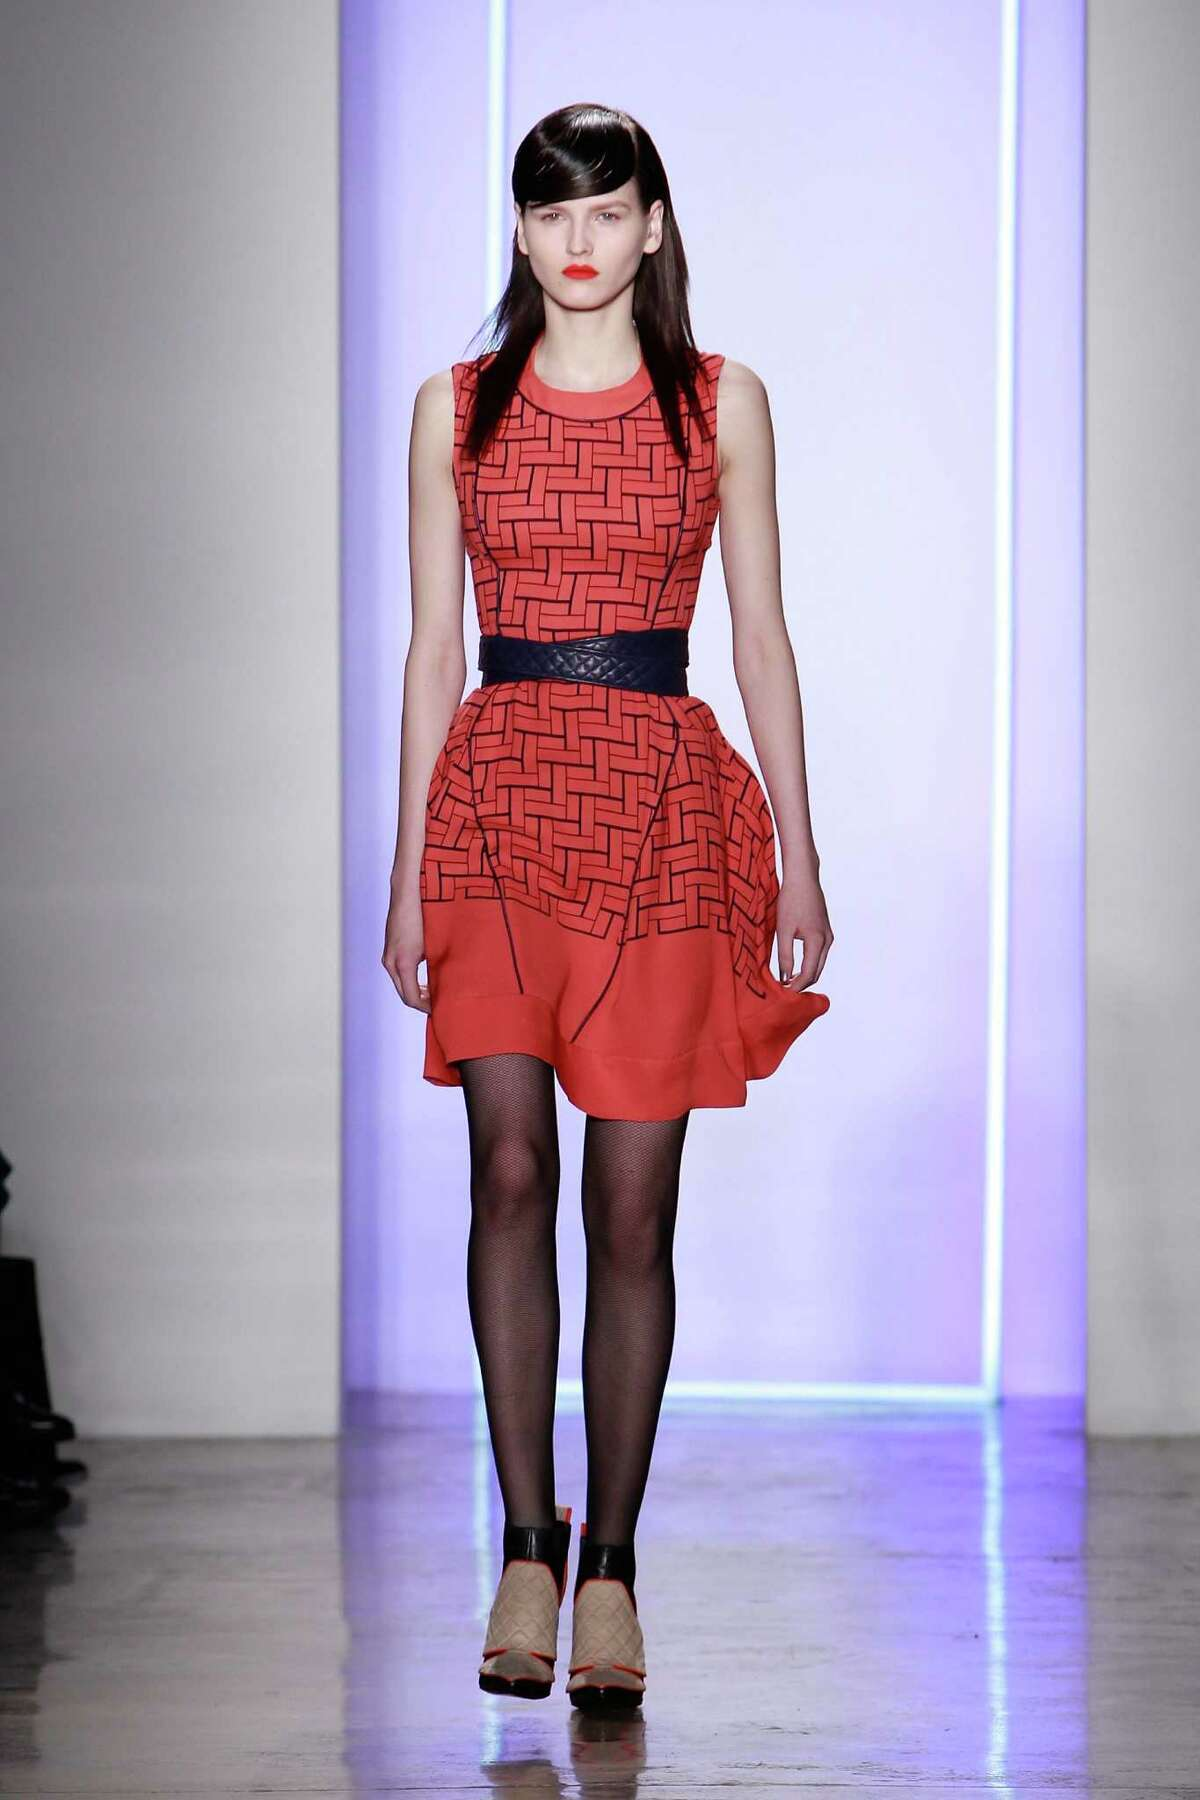 A model walks the runway at the Ohne Titel fall 2013 fashion show during MADE Fashion Week at Milk Studios on February 11, 2013 in New York City.